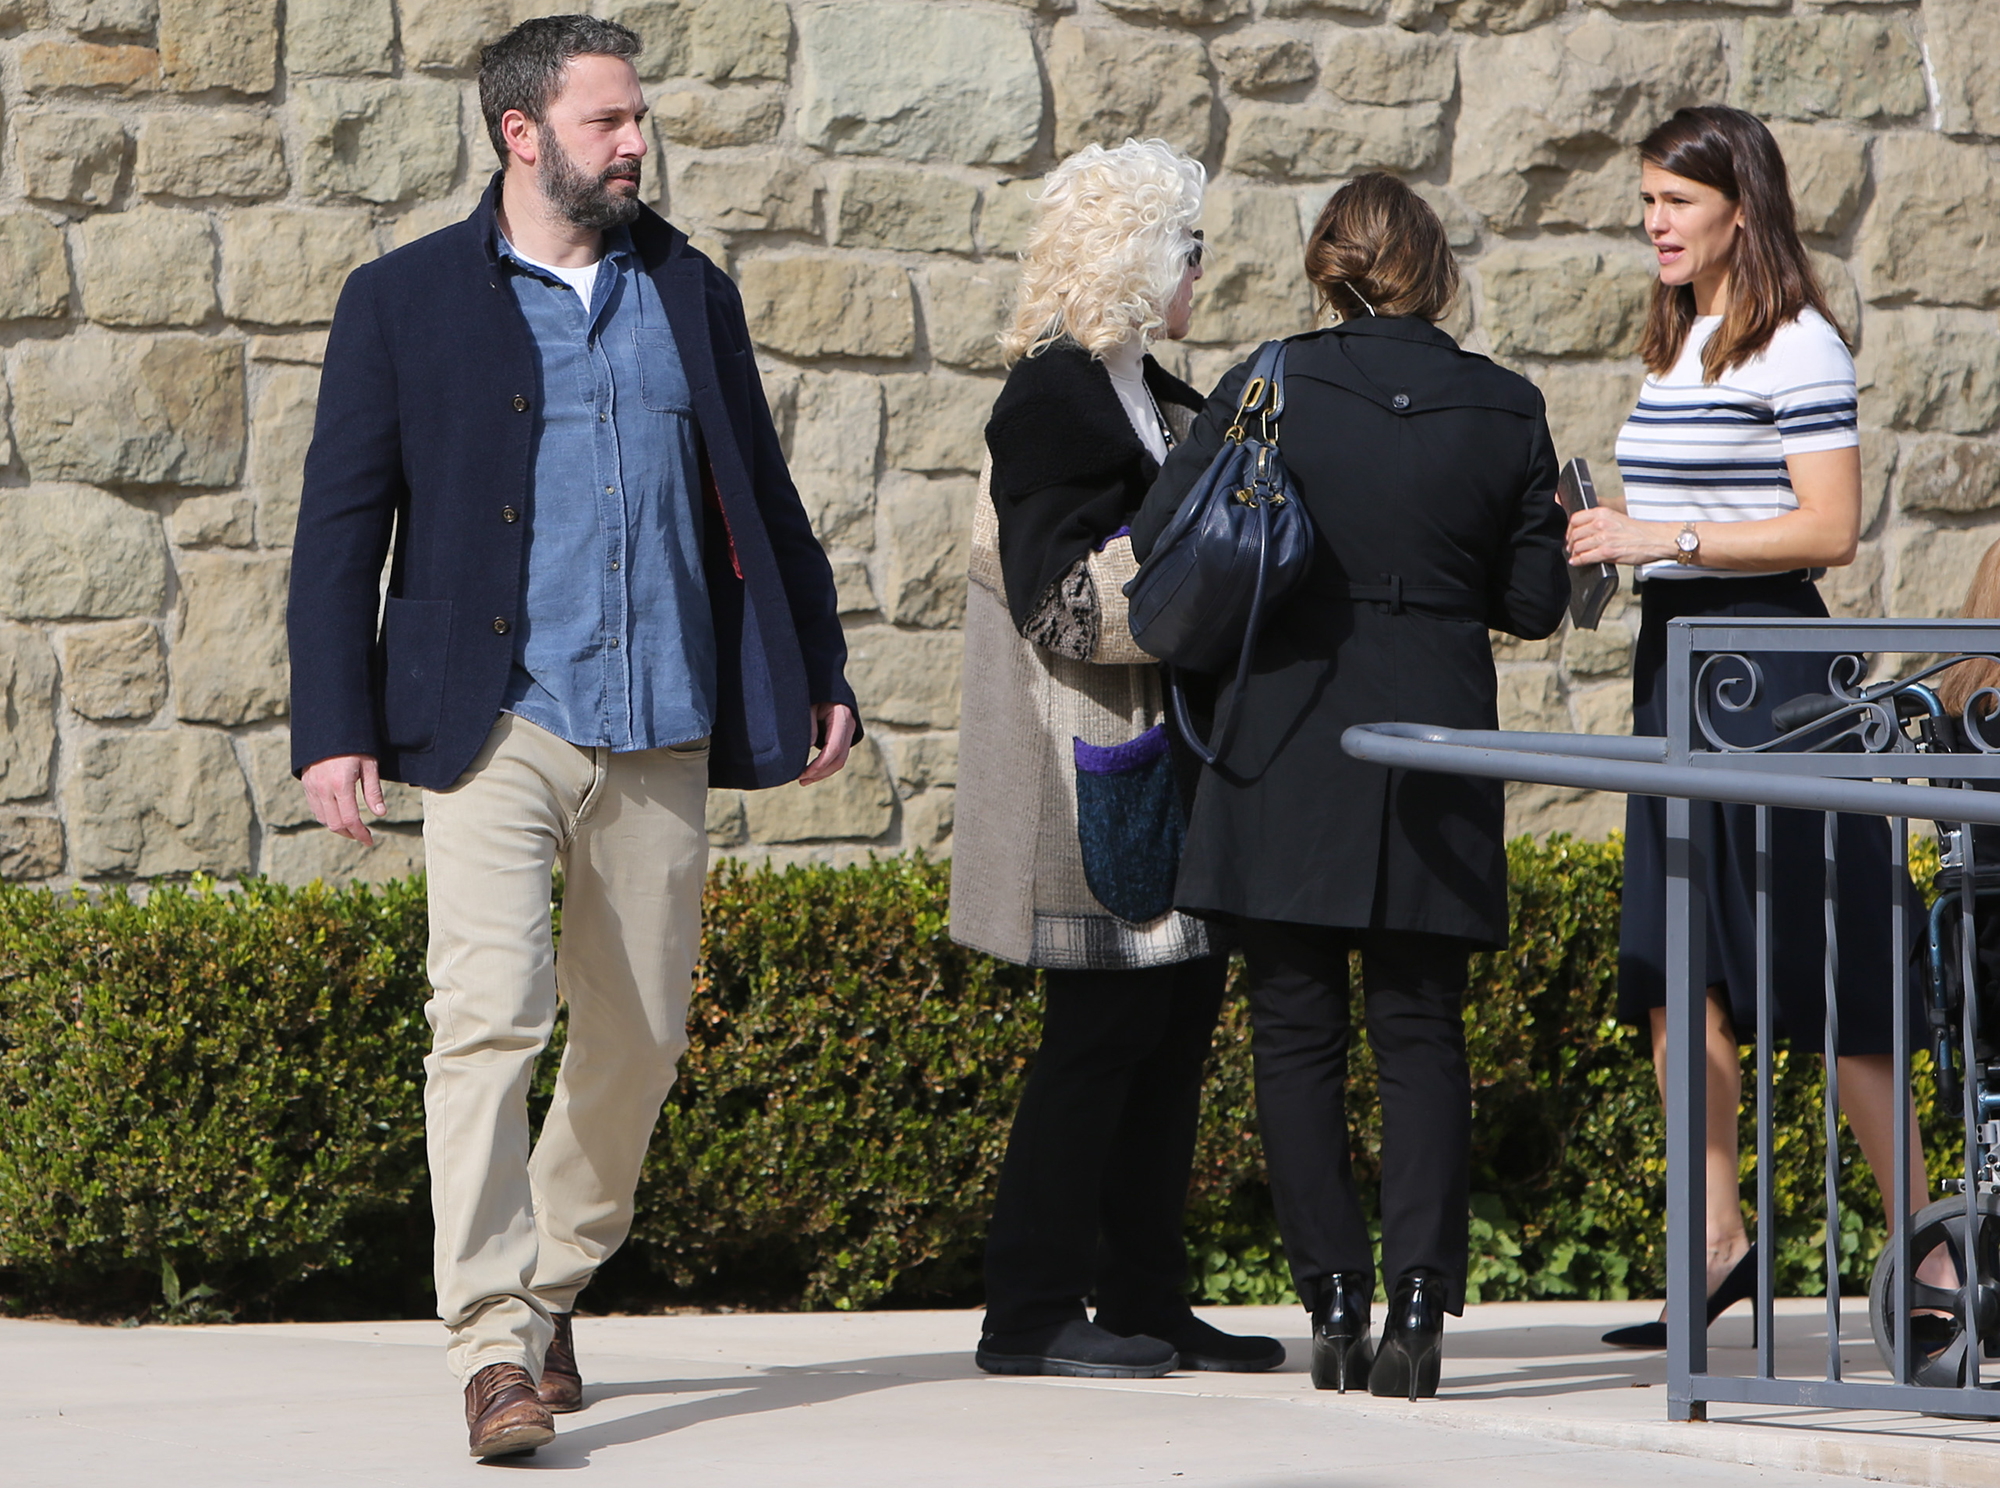 Ben Affleck and Jennifer Garner Reunite for Family Church Outing 2 Months After Finalizing Divorce - The exes also attended a World Series game in October but were seated separately on the suite level of Los Angeles' Dodger Stadium, a source told Us at the time, adding that Garner met up with Miller later that night.